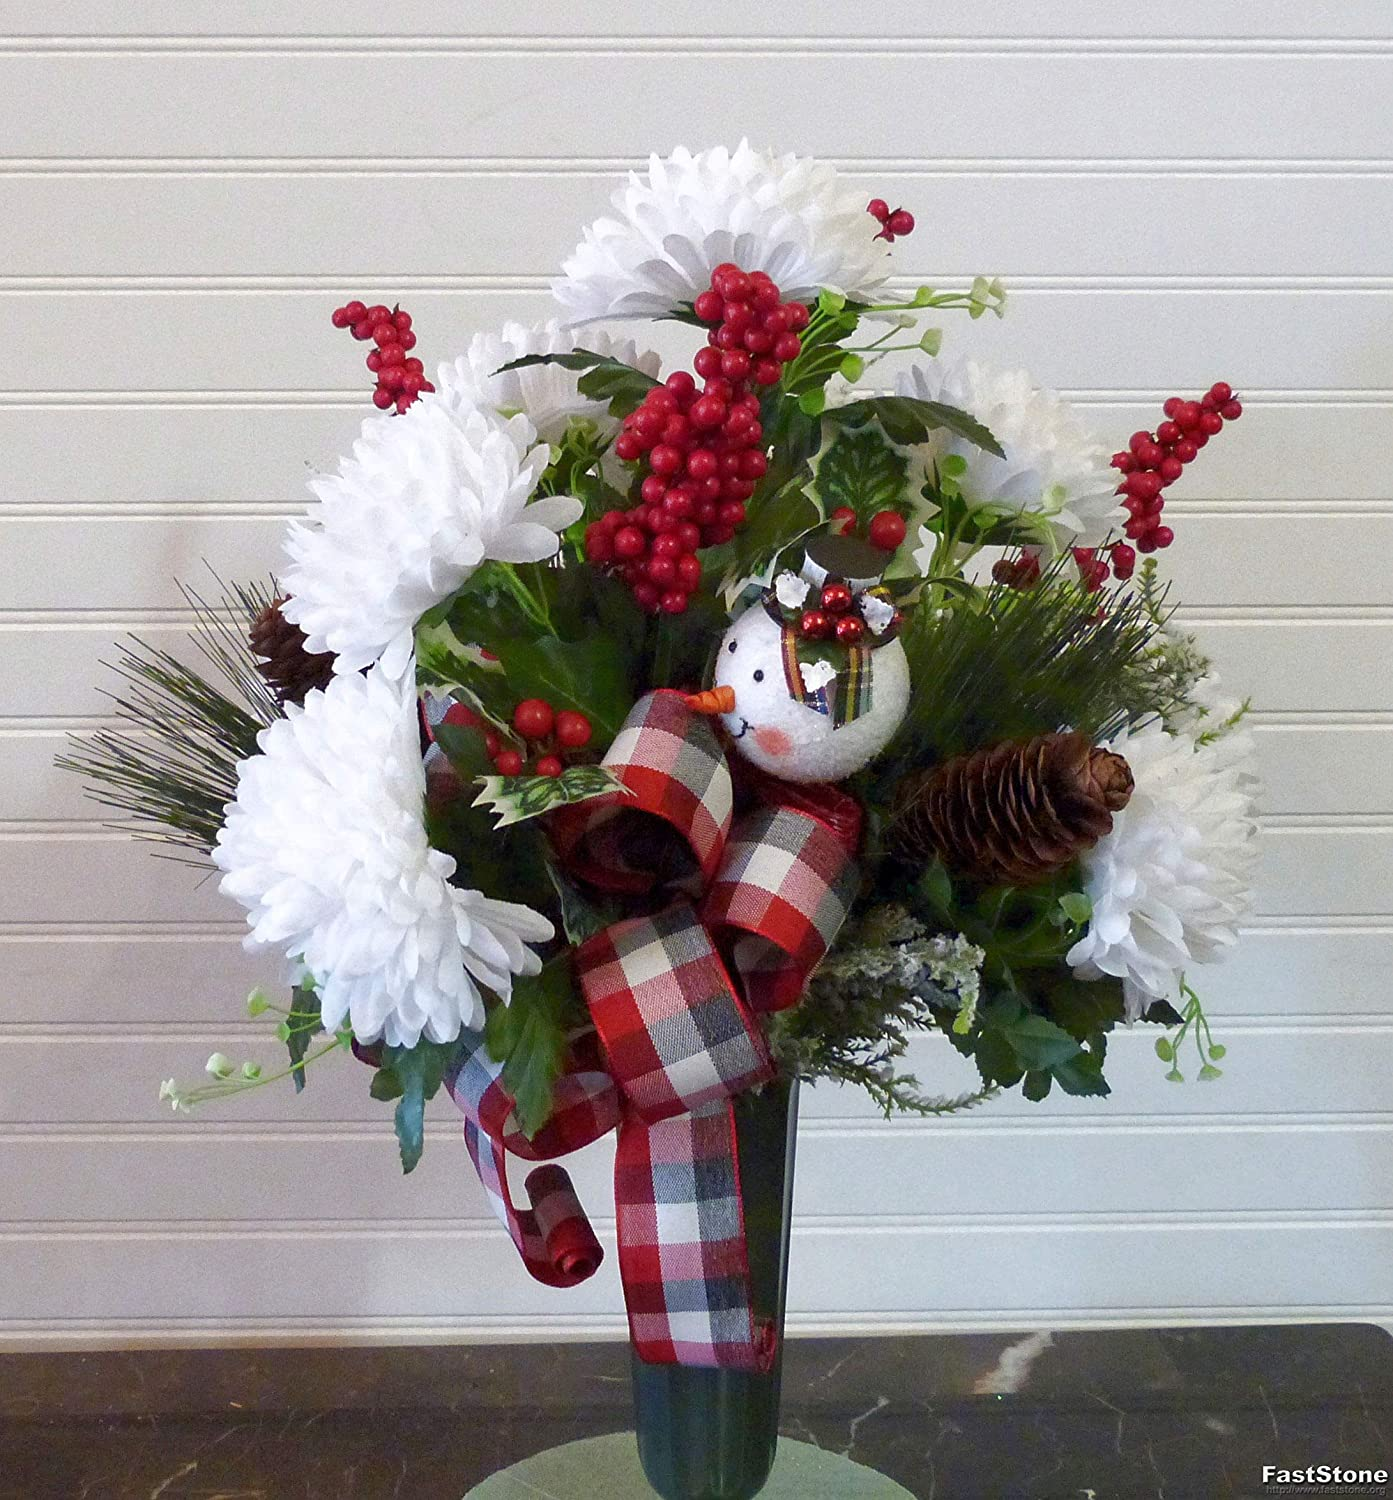 Christmas Cemetery Vase with Mums Cemetery Flowers with snowman Grave Flowers Christmas